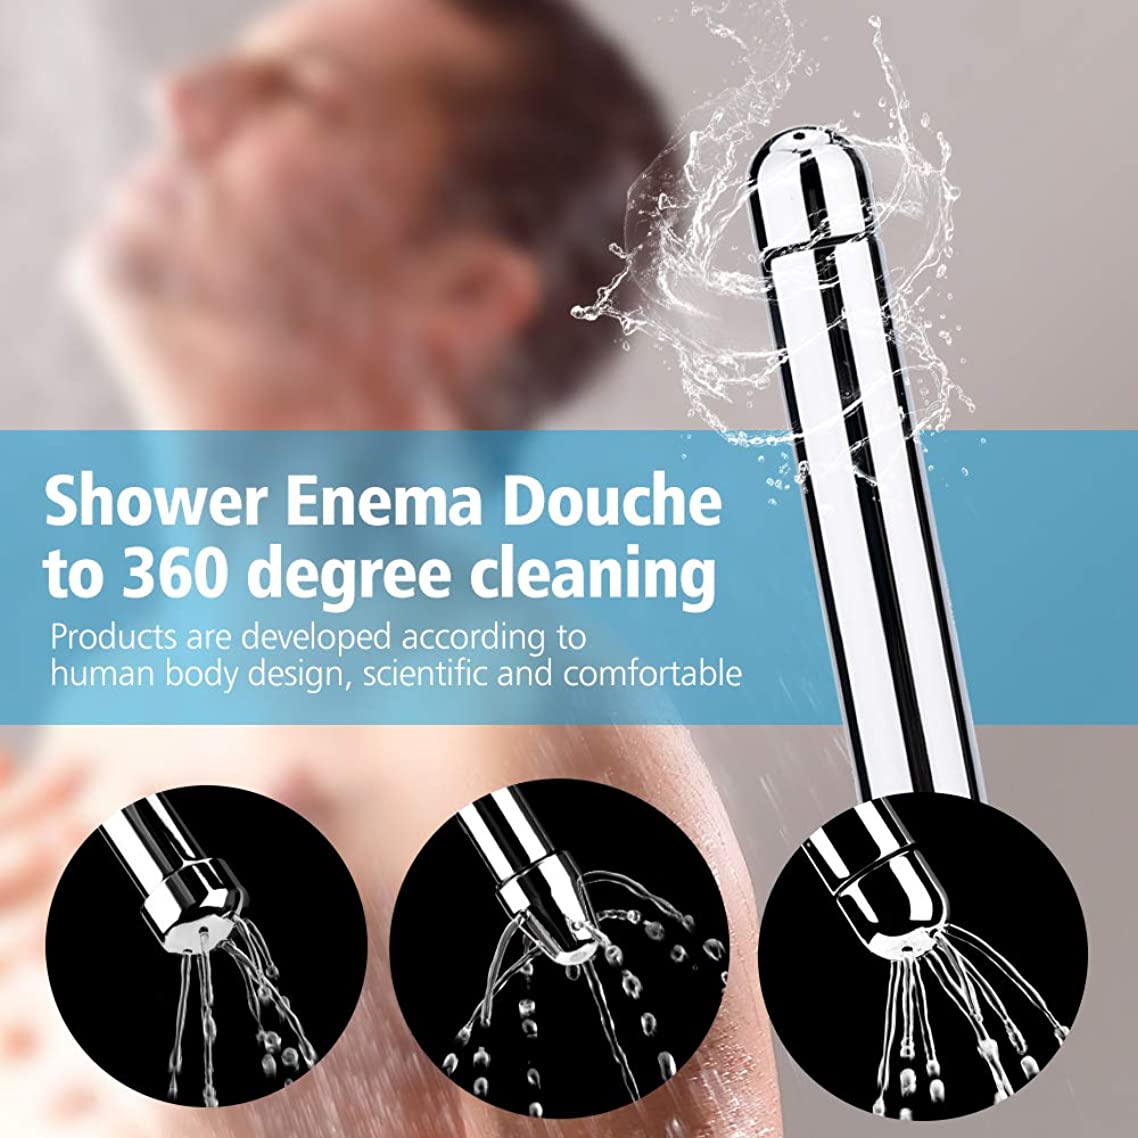 HailiCare Home Shower Enema Nozzle Kits 3 Style Heads Aluminum Vaginal Anal Cleaner Colonic Douche System Cleaner (Enema Nozzle Kits 3 Shower Heads)